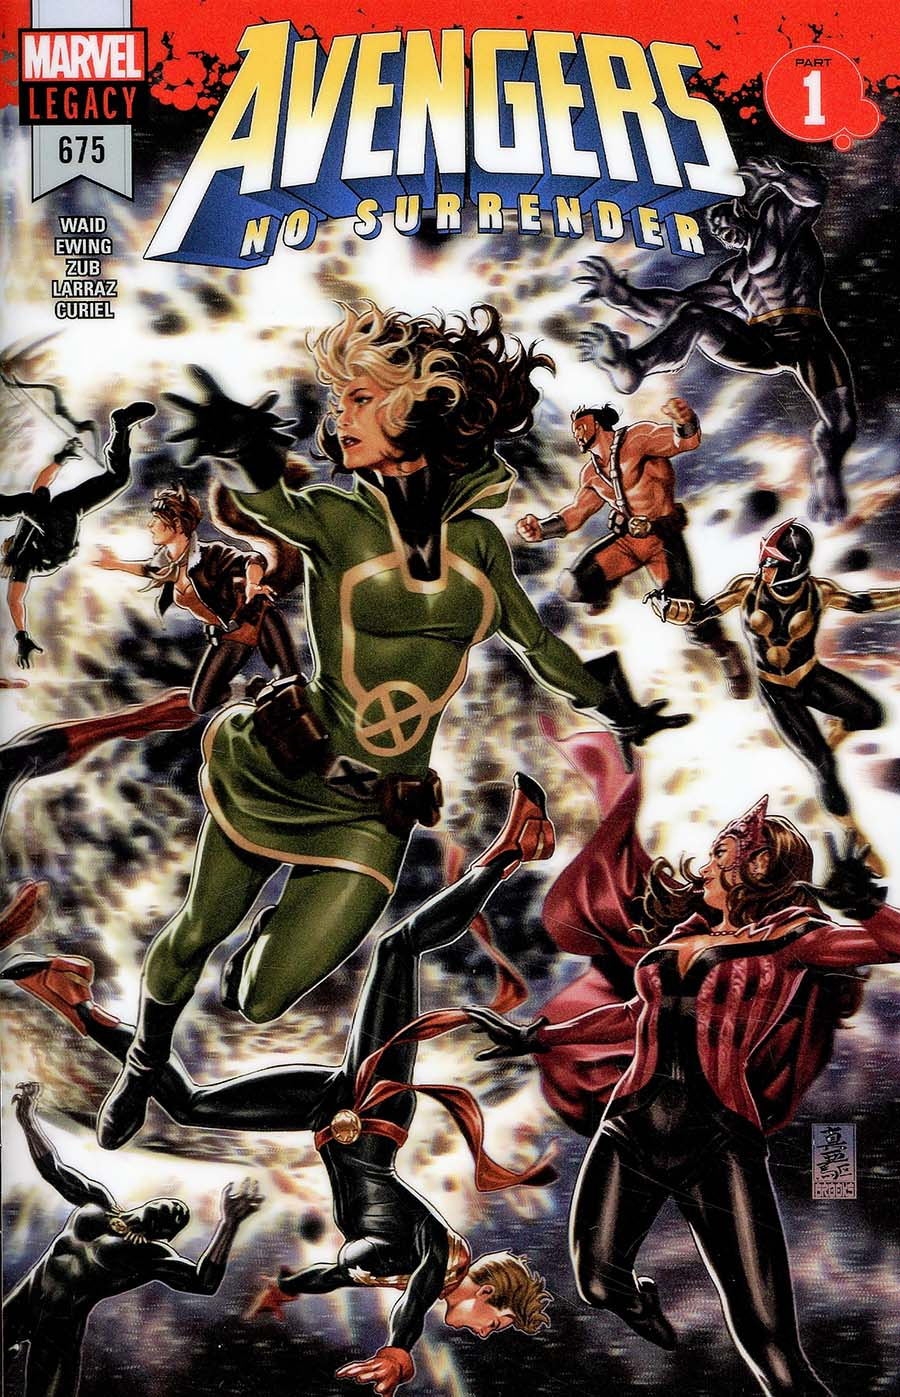 Avengers Vol 6 #675 Cover A 1st Ptg Regular Mark Brooks 3D Lenticular Wraparound Cover (No Surrender Part 1)(Marvel Legacy Tie-In)